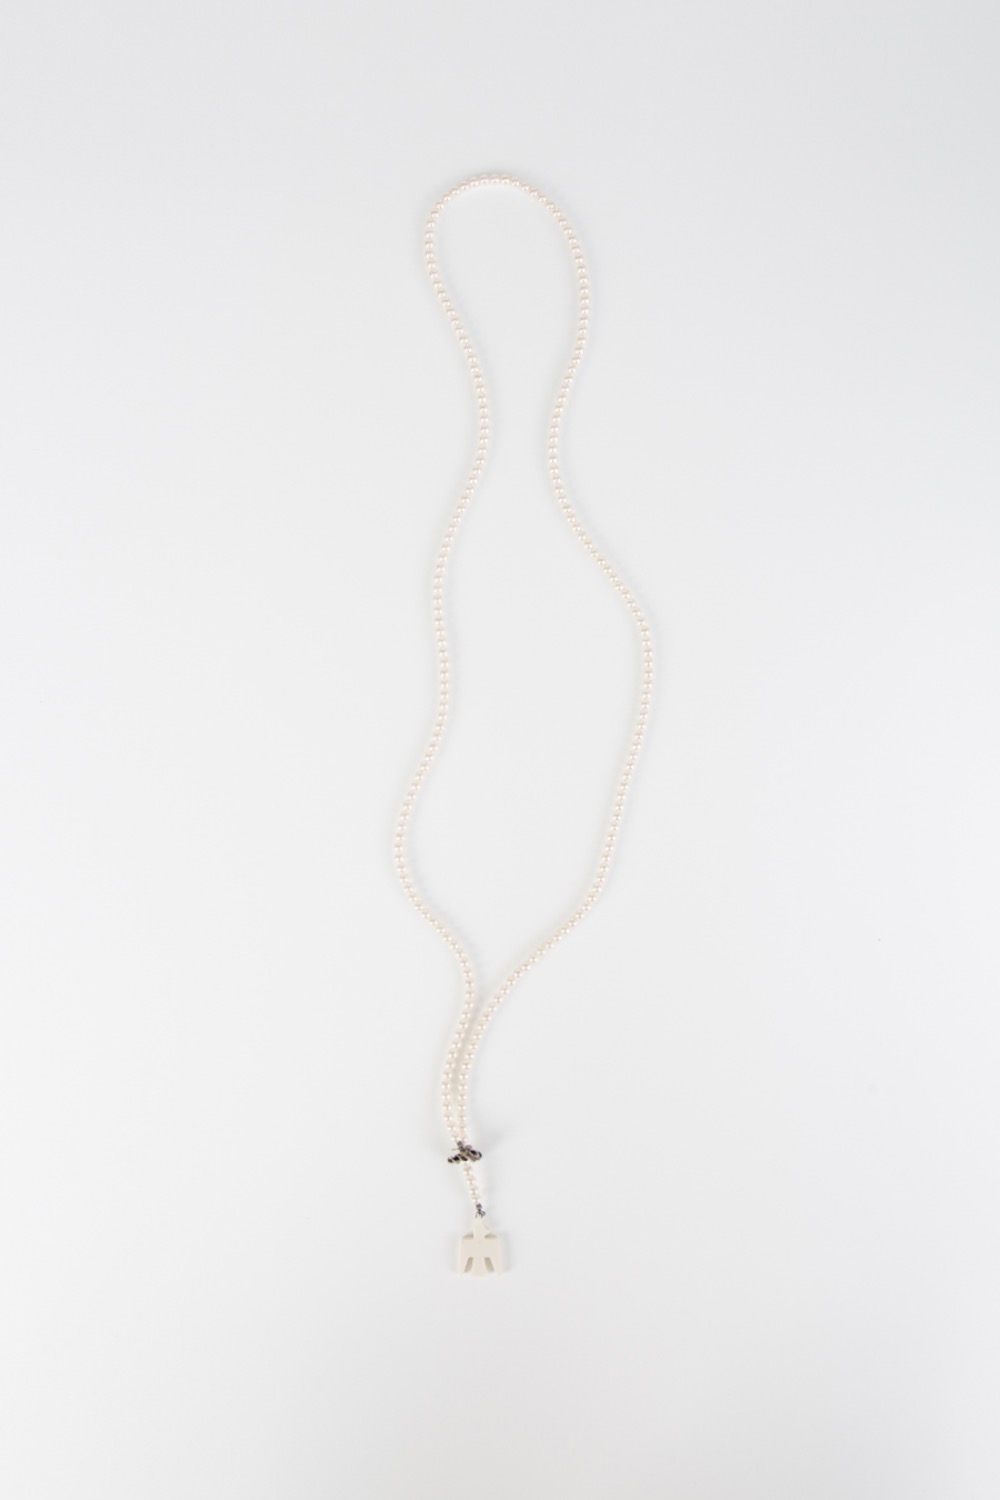 STD BATTERY BIRD PEARL NECKLACE(LONG)